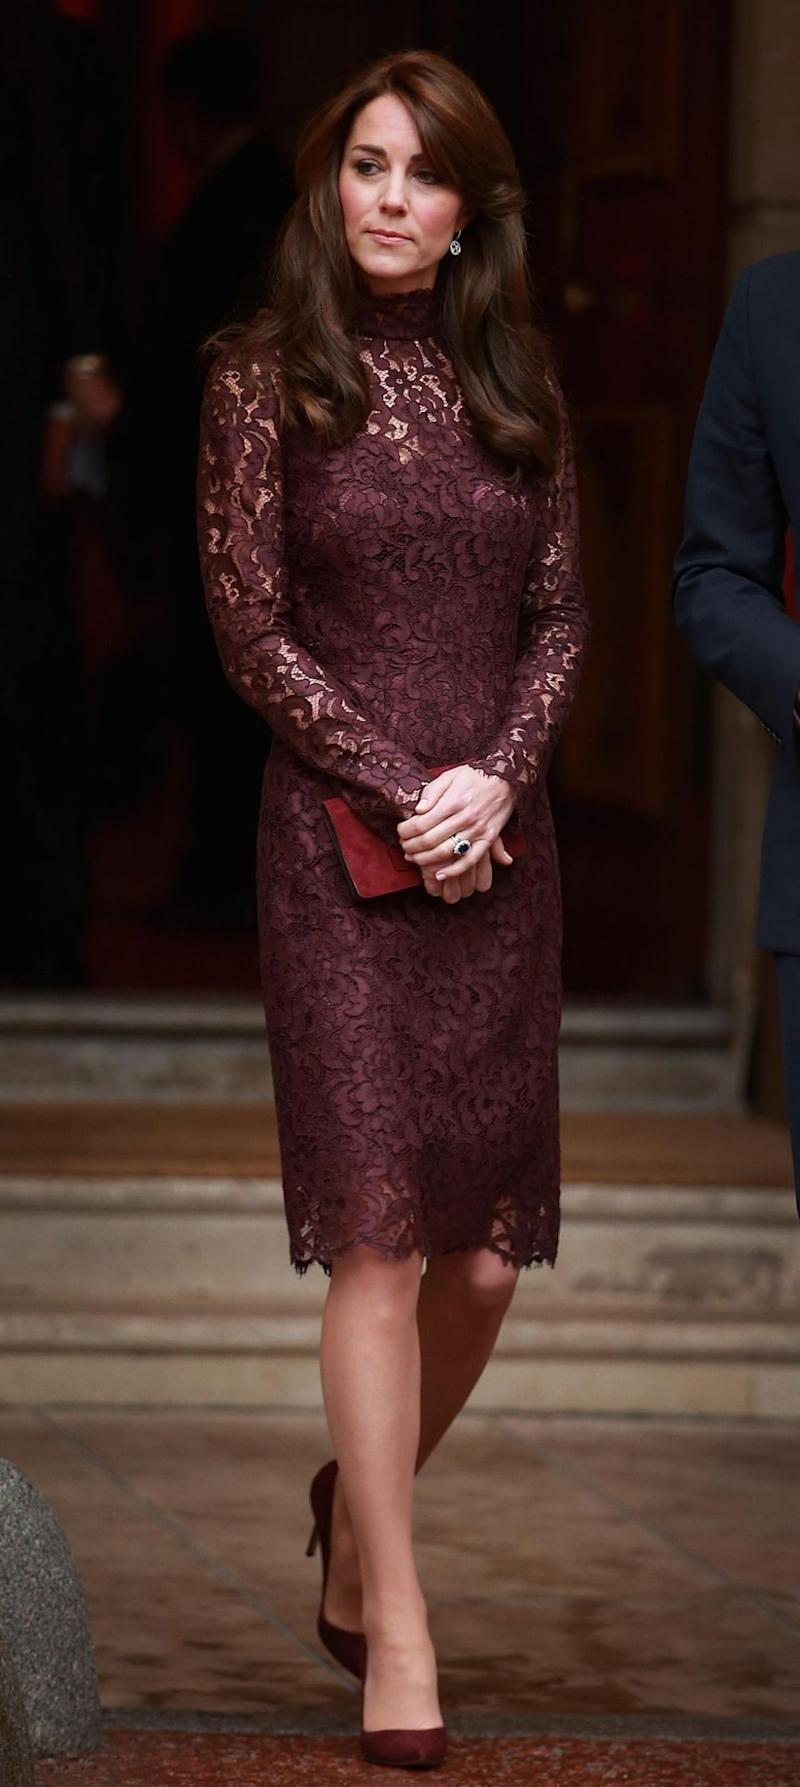 Back in October 2015 Kate wore this purple lace Dolce & Gabbana knee-length dress. Photo: Getty.